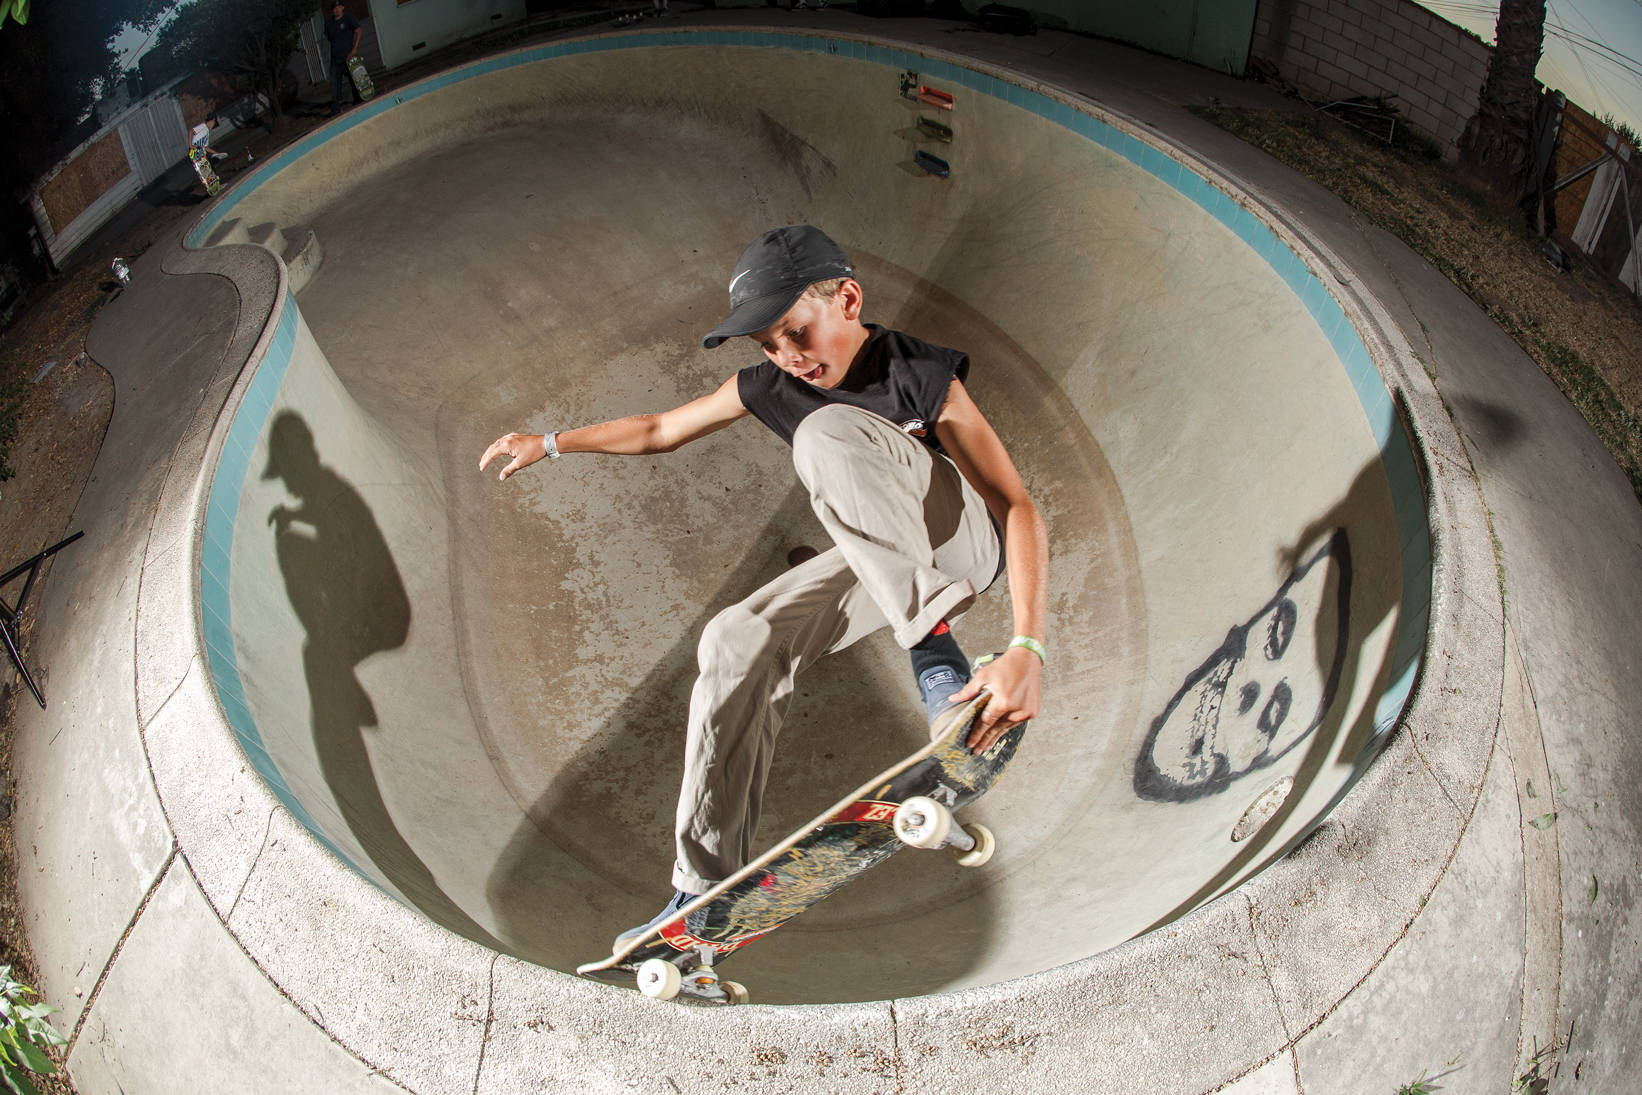 THE NEXT NEW WAVE -- Keegan Palmer - Berrics Magazine